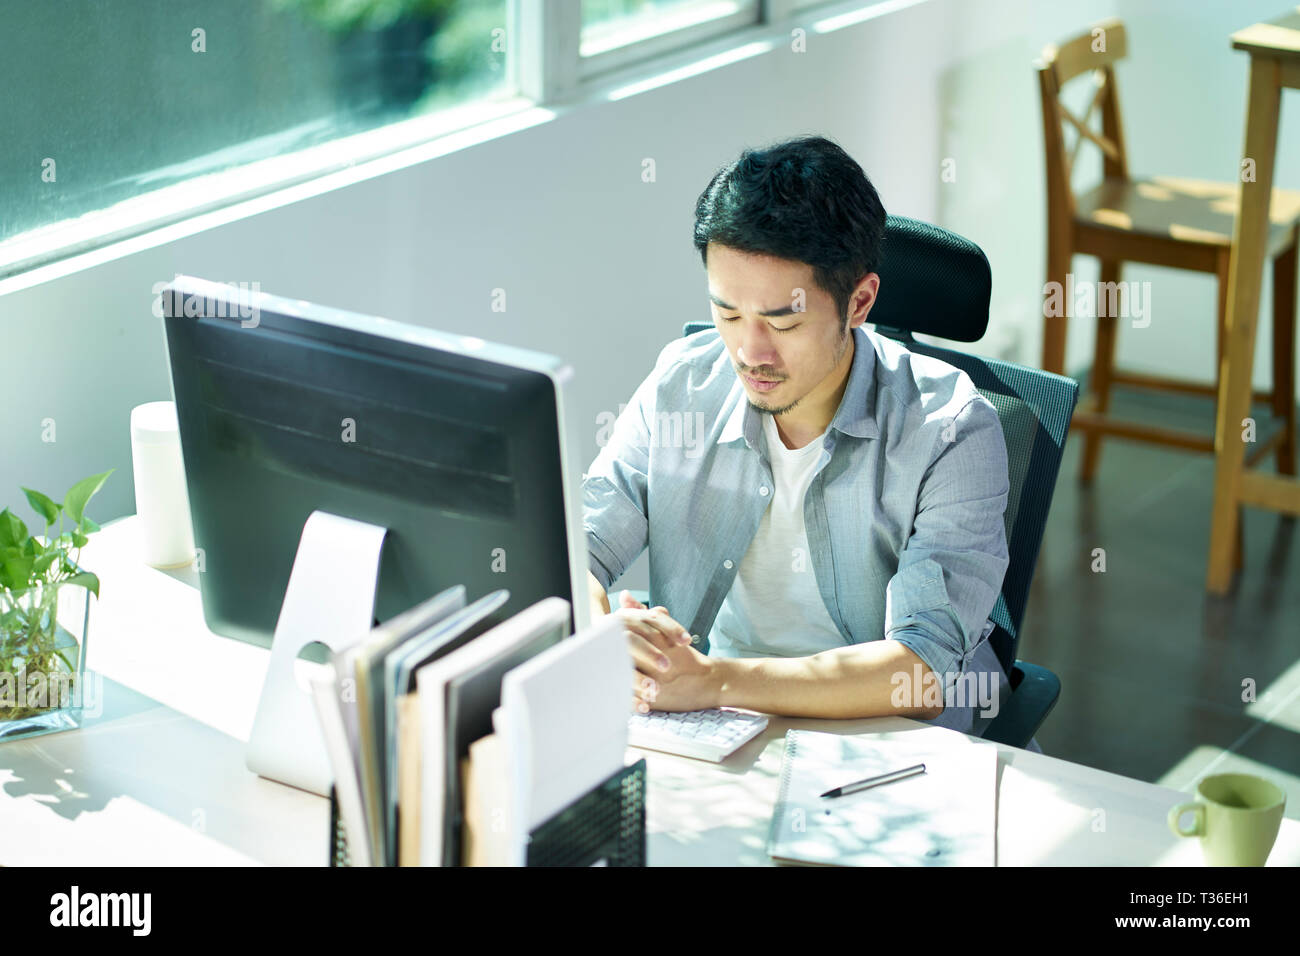 young asian business man entrepreneur sitting at desk in office contemplating. - Stock Image